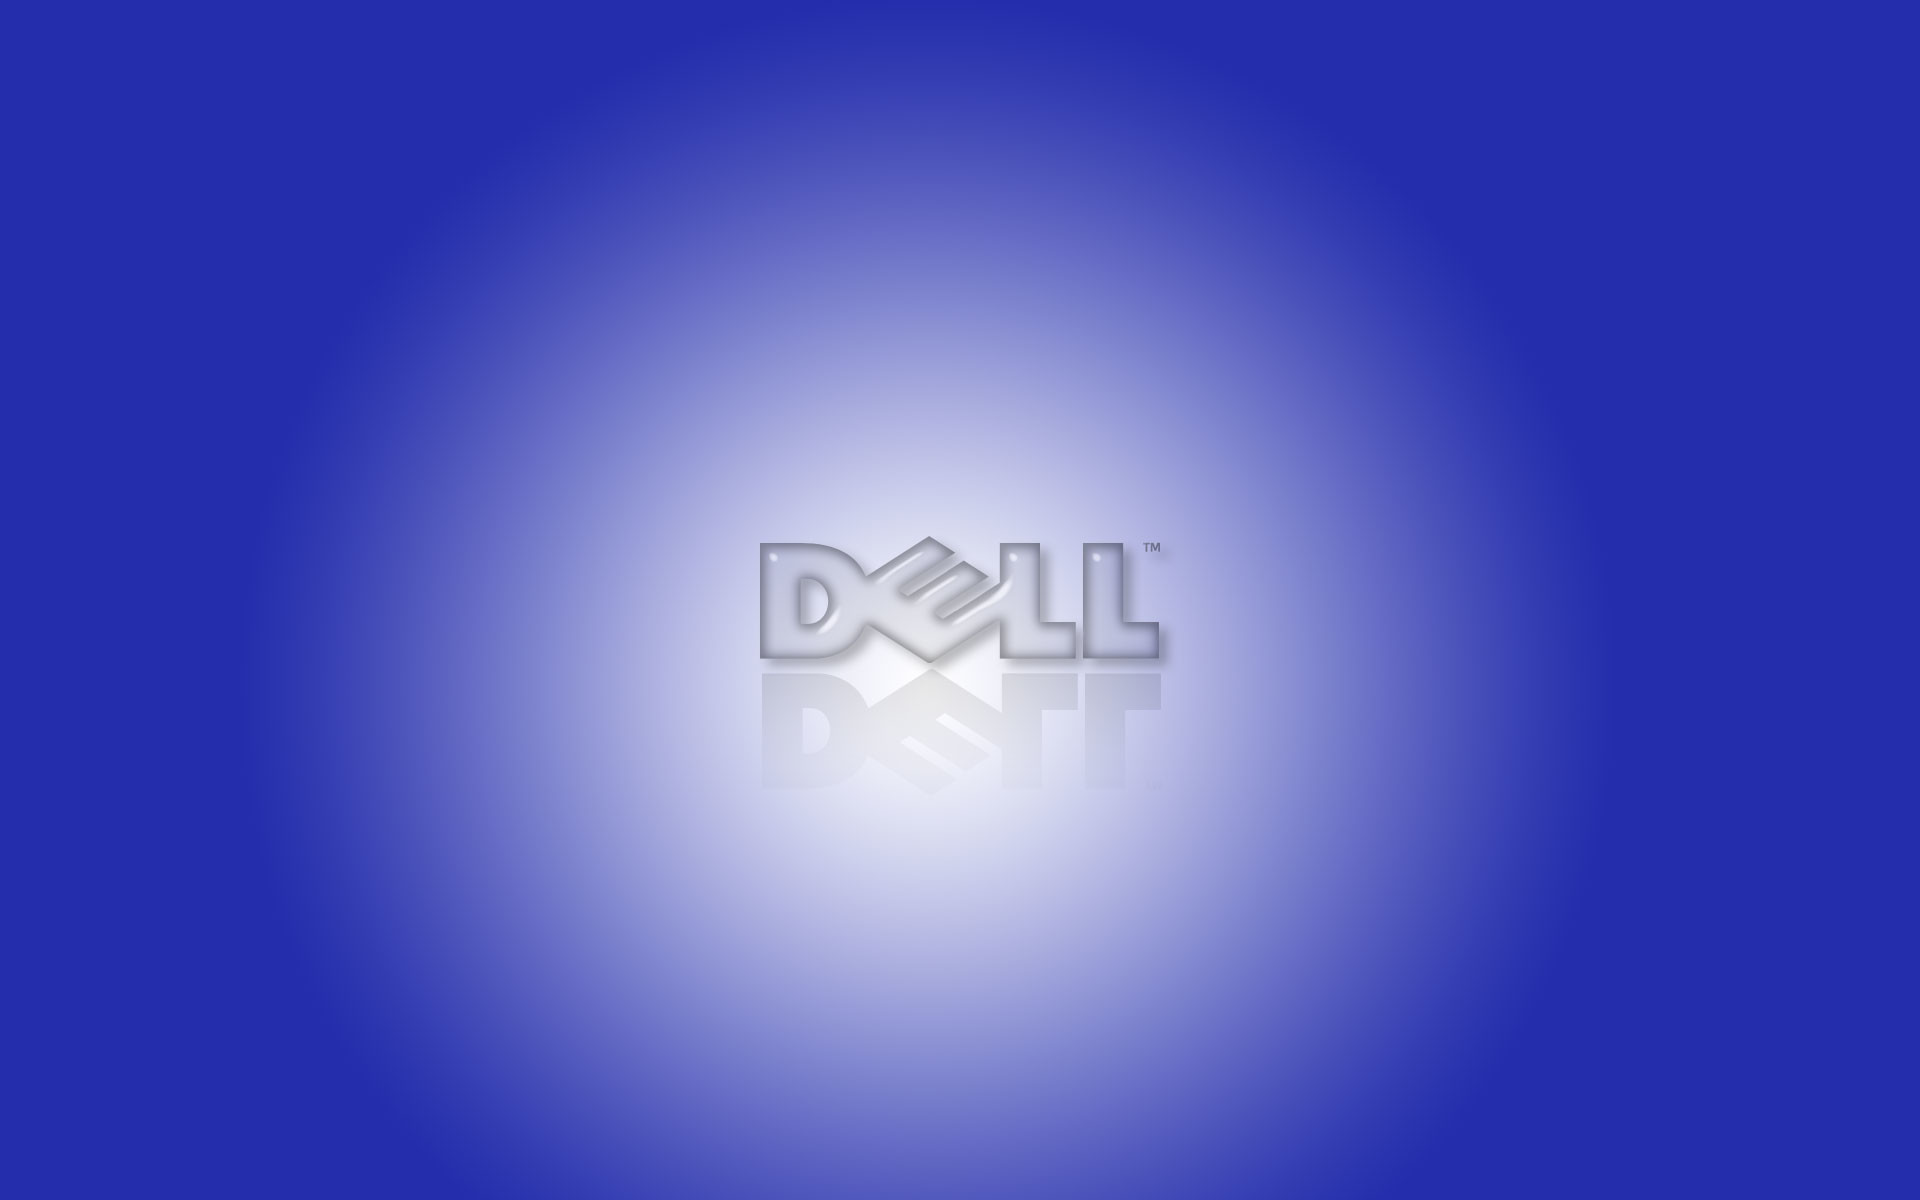 dell background wallpaper